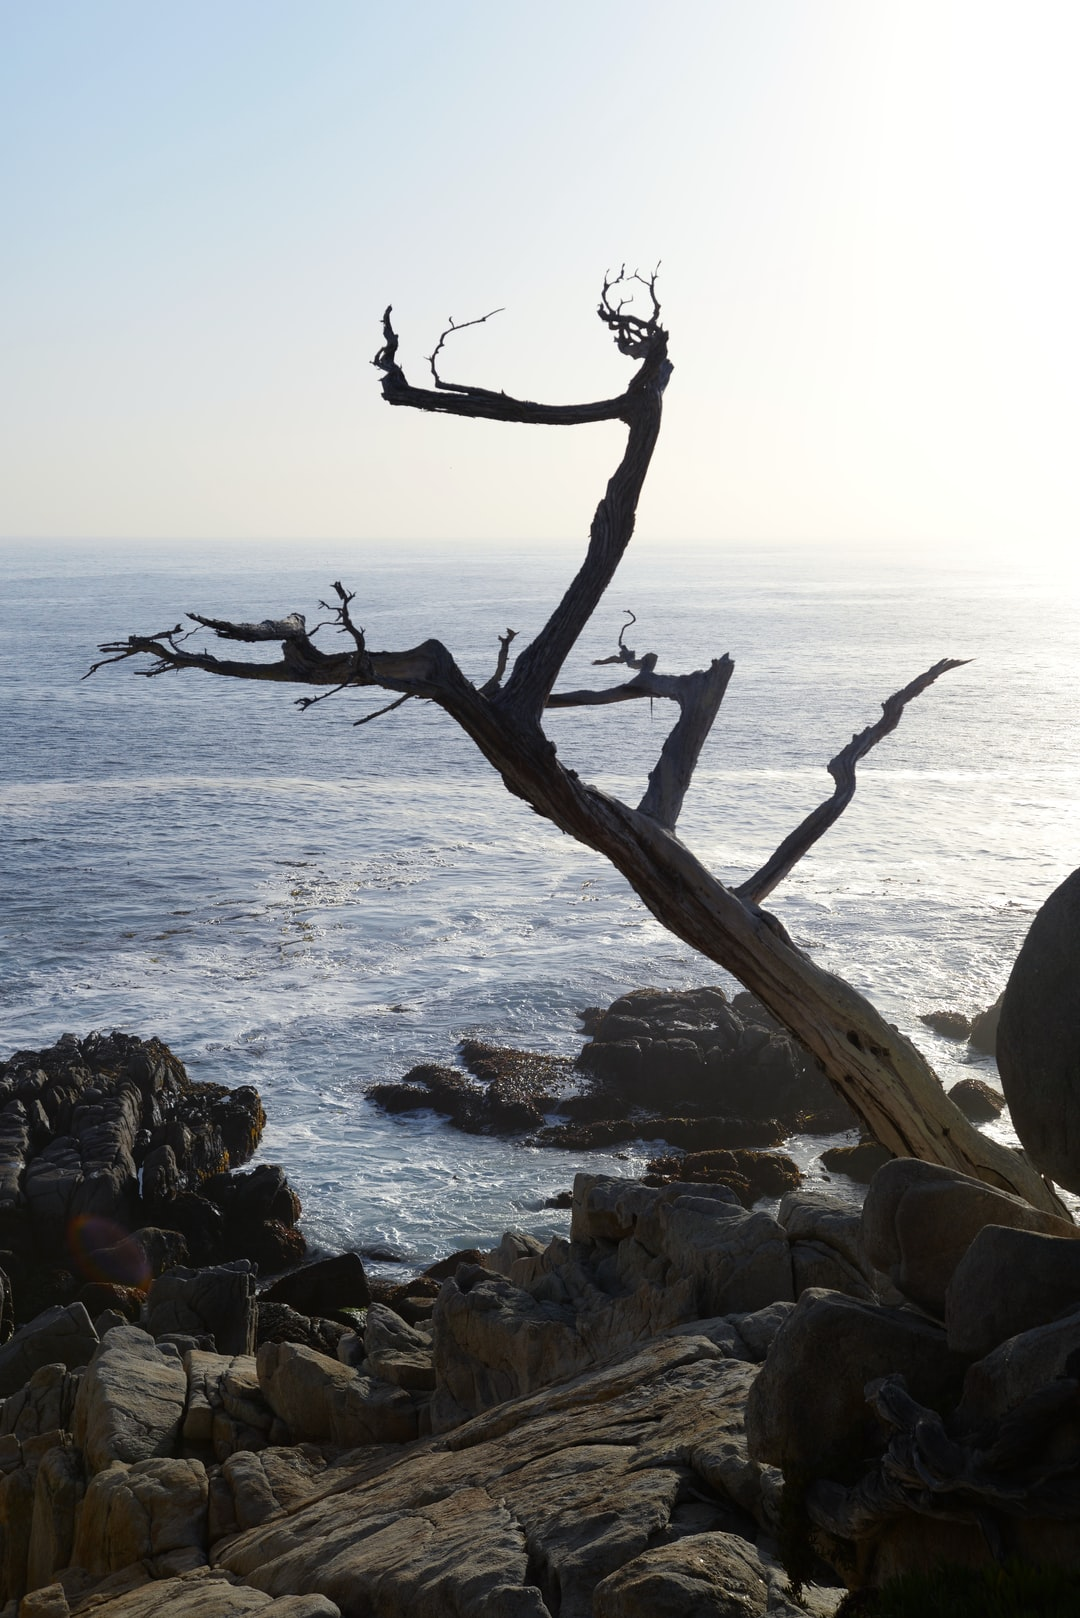 Ghost Tree is one of the final points of interest along the 17 Mile Drive in Pebble Beach, California. The cypress trees for which the point is named are white and gnarled and haunting. Foresters predict that the few cypress trees still living in California will be killed by beetles over the next two decades.